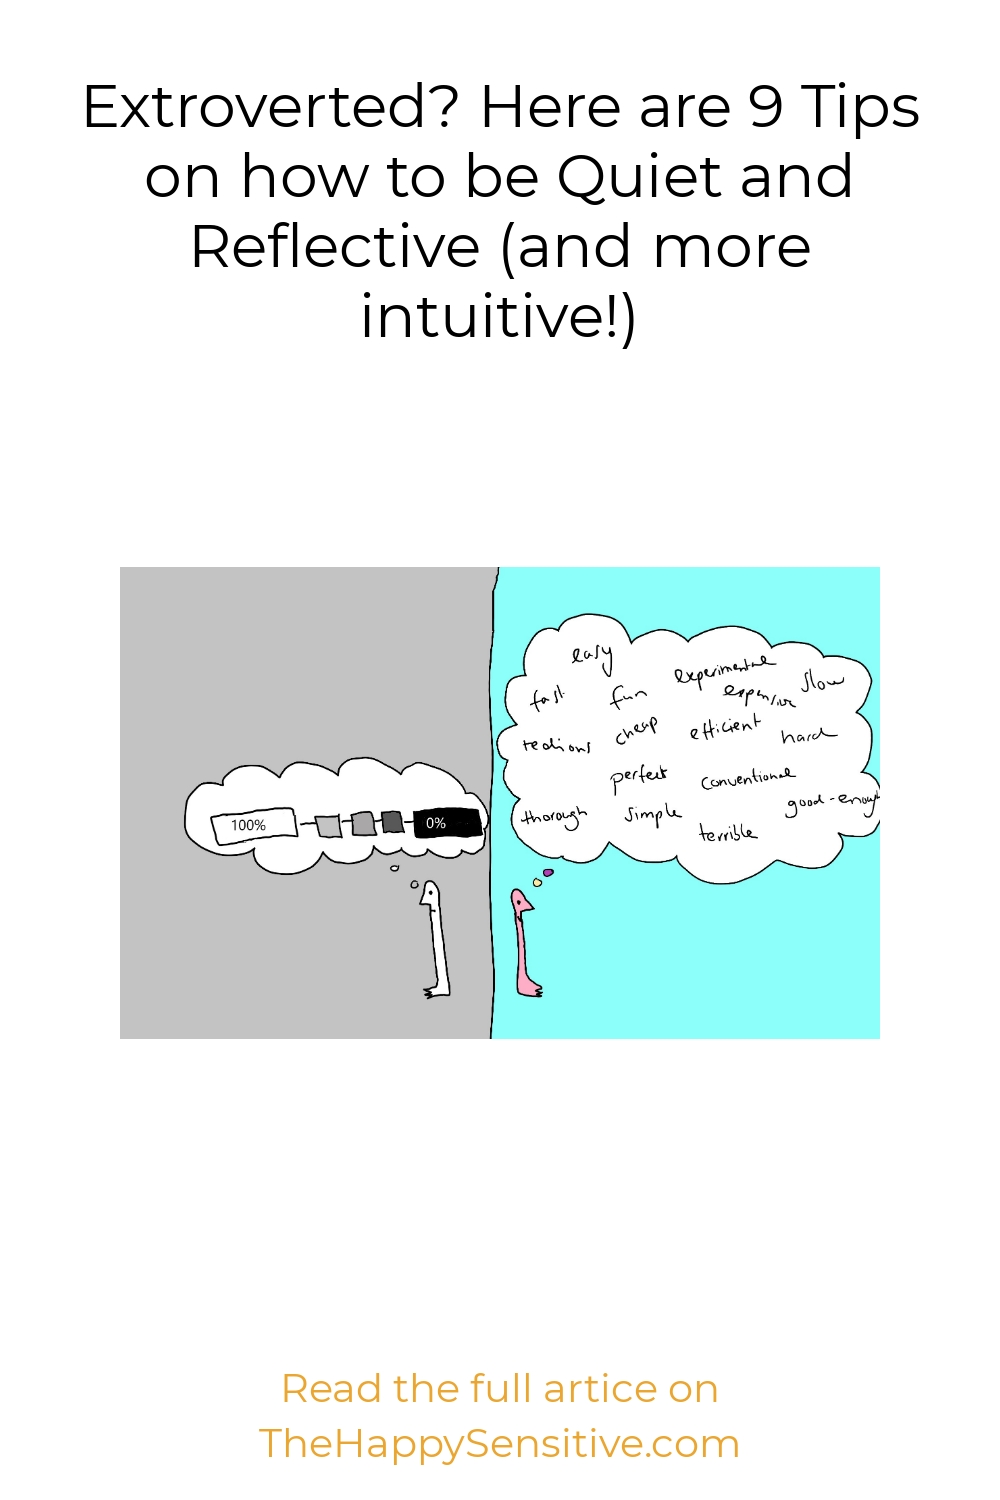 Extroverted? Here are 9 Tips on how to be Quiet and Reflective (and more intuitive!)